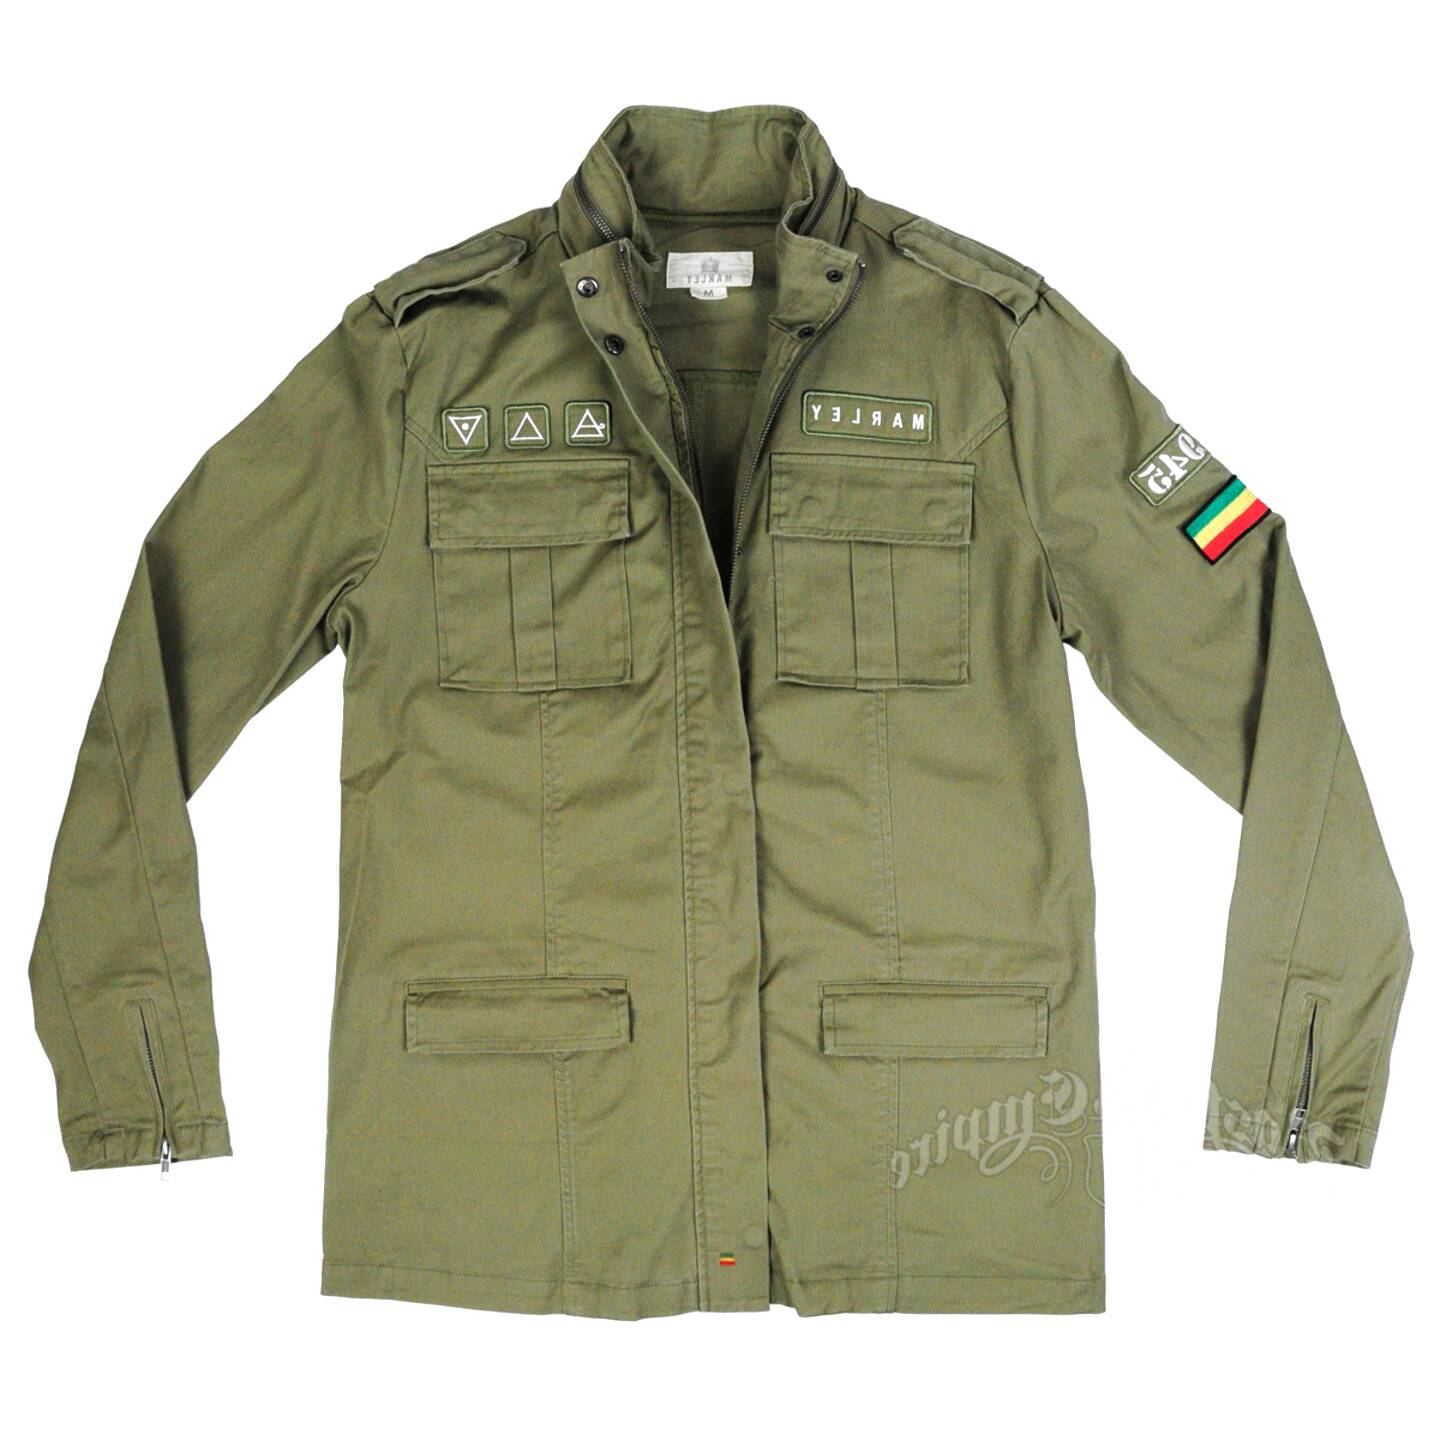 green military jacket for sale